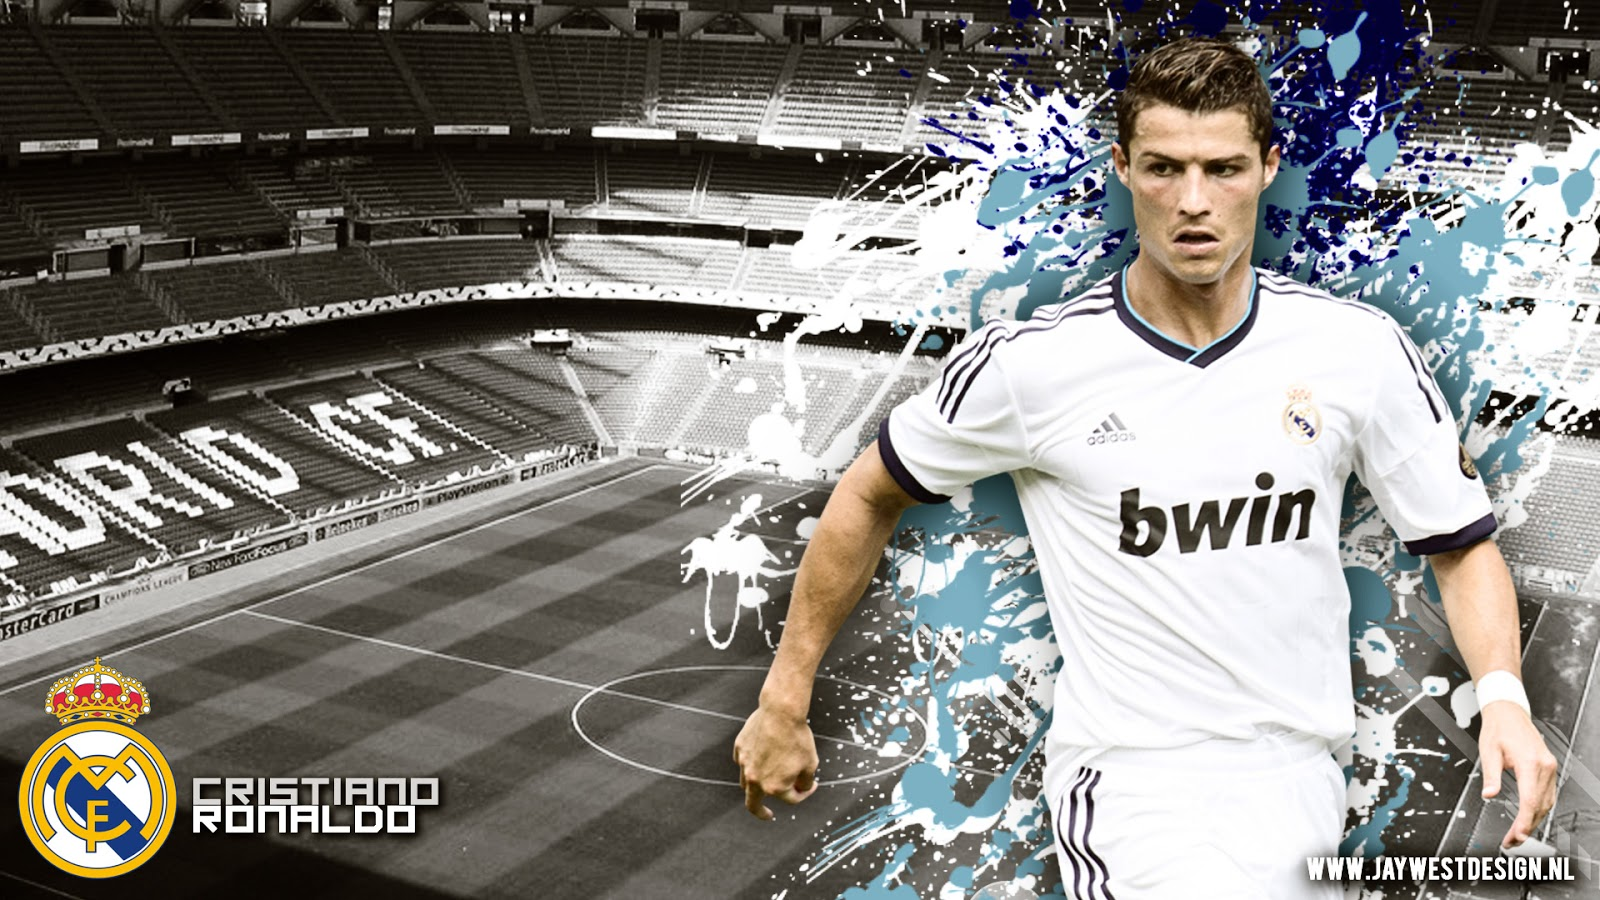 Fond ecran real madrid hd fond ecran pc for Fond d ecran juventus pc